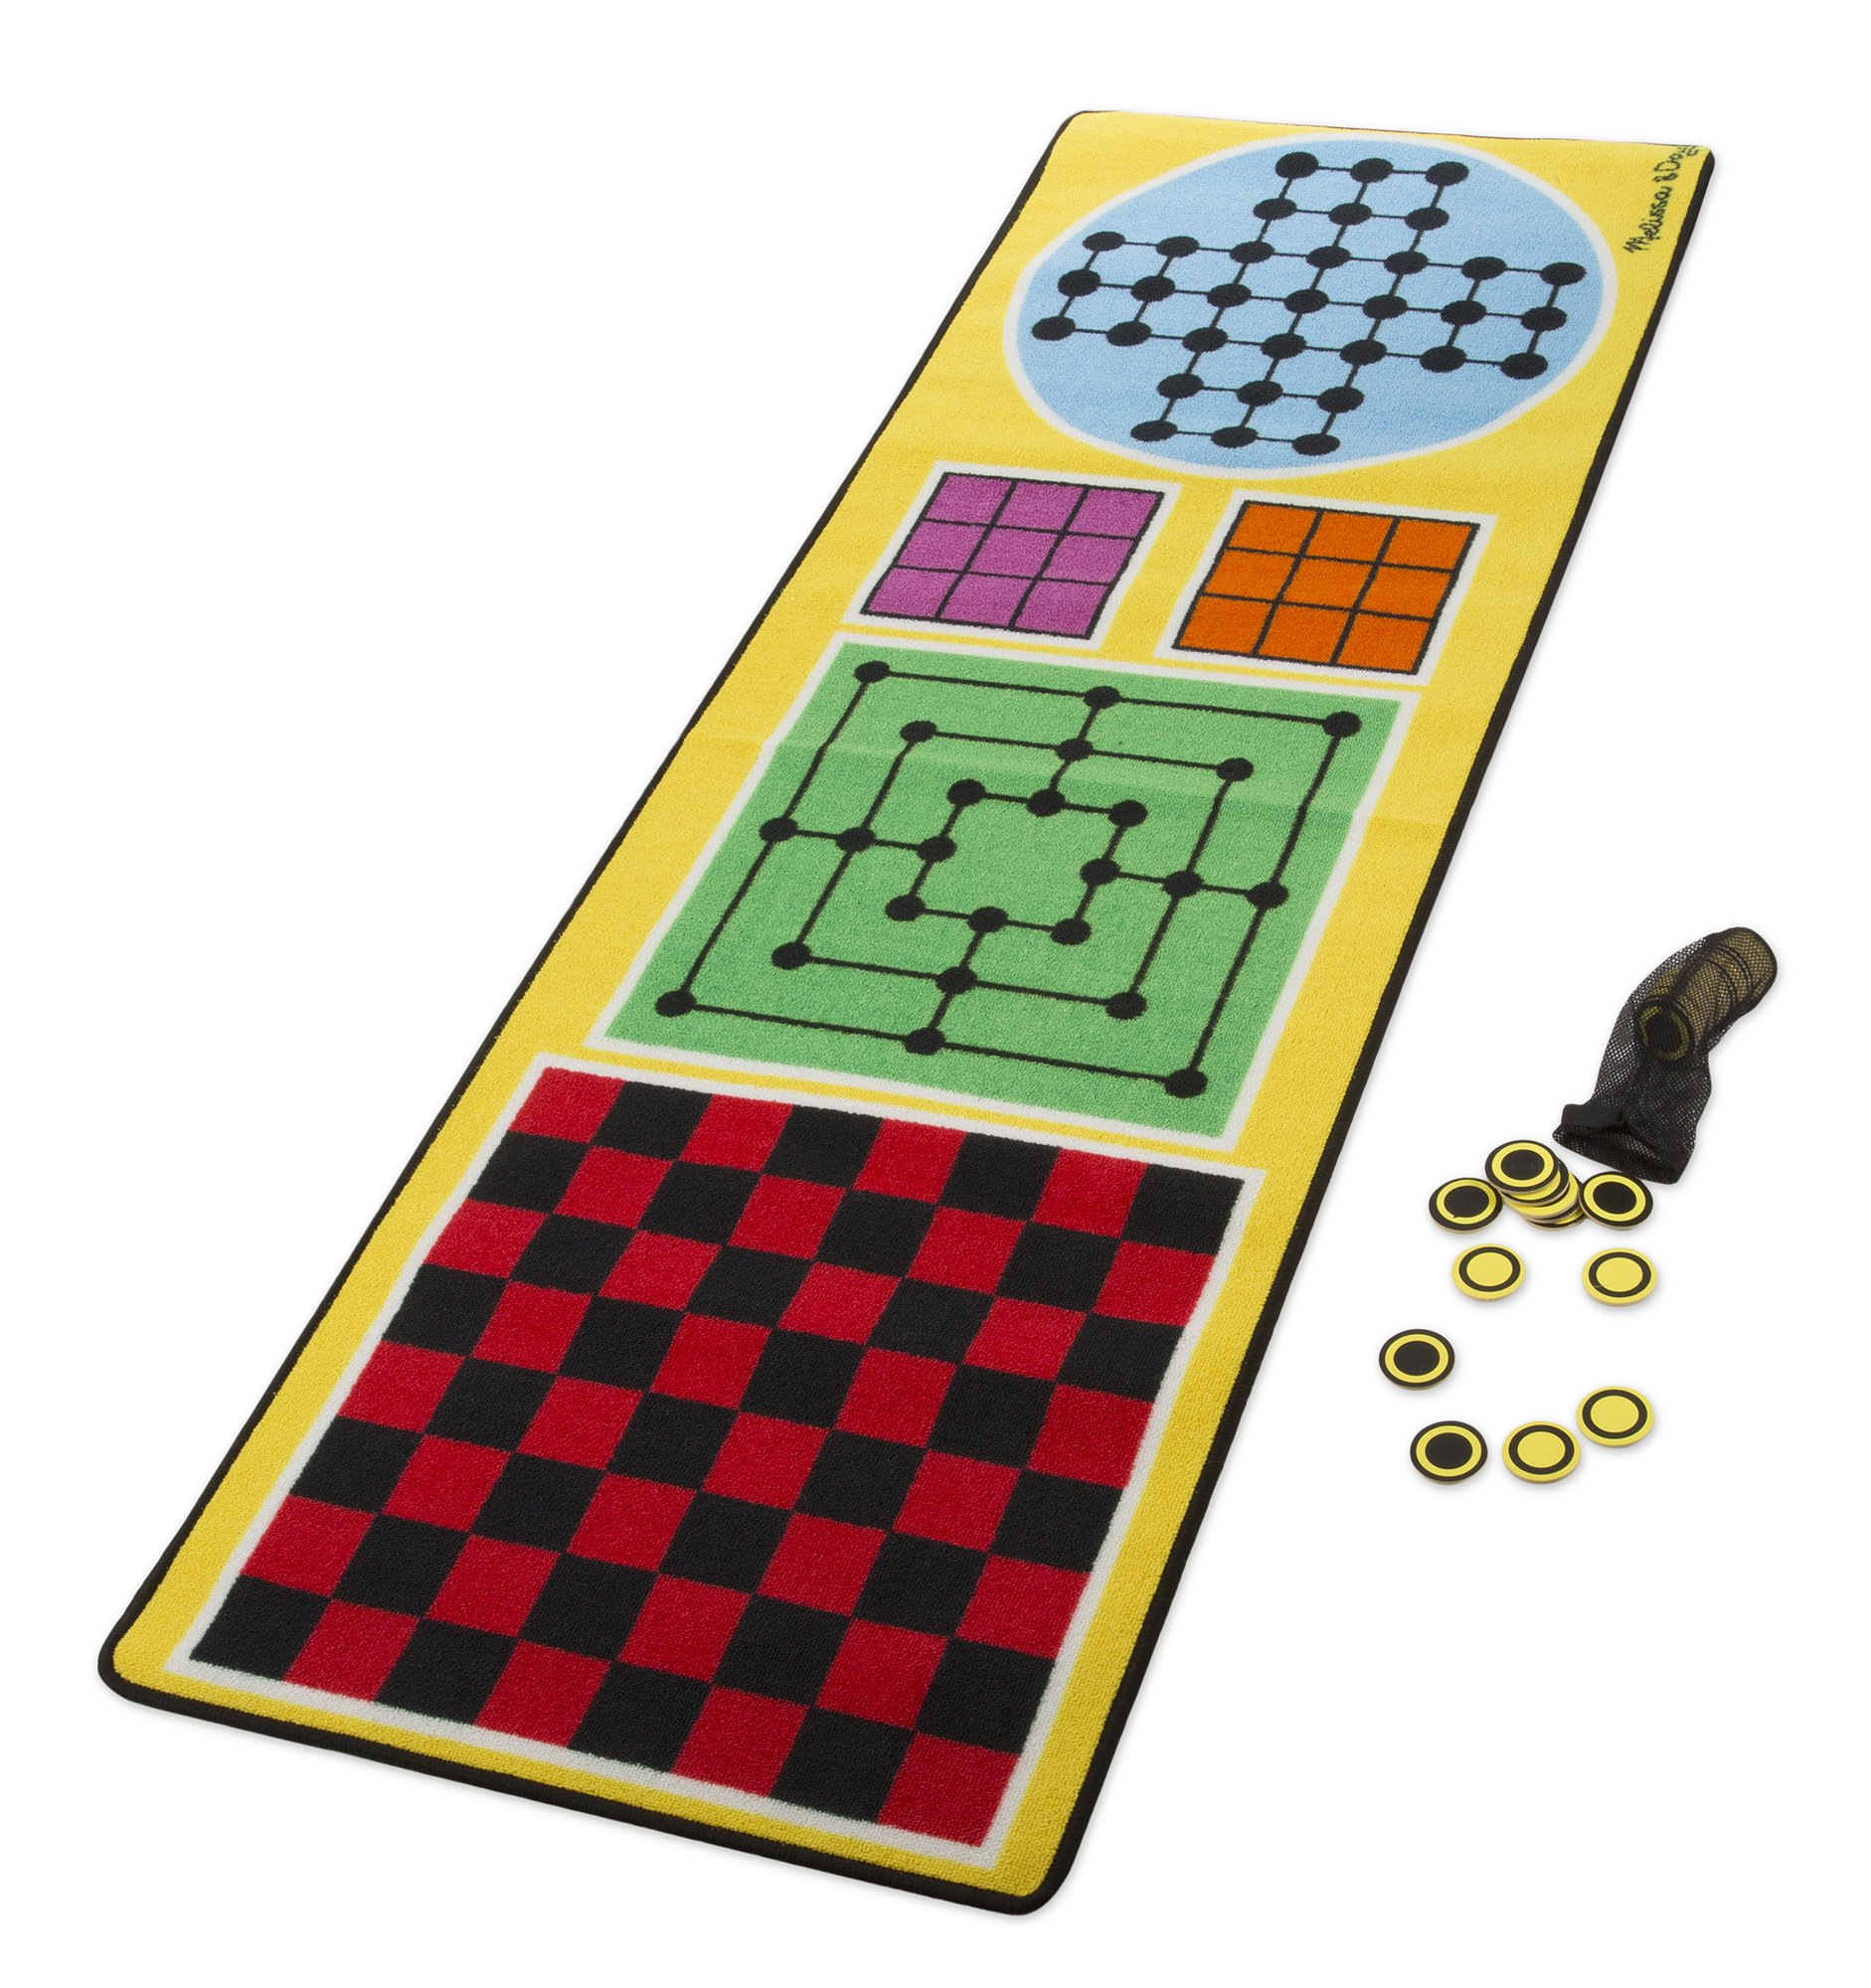 Melissa & Doug 4-in-1 Game Rug (78.5 x 26.5 inches) - 4 Board Games, 36 Game Pieces by Melissa & Doug (Image #2)